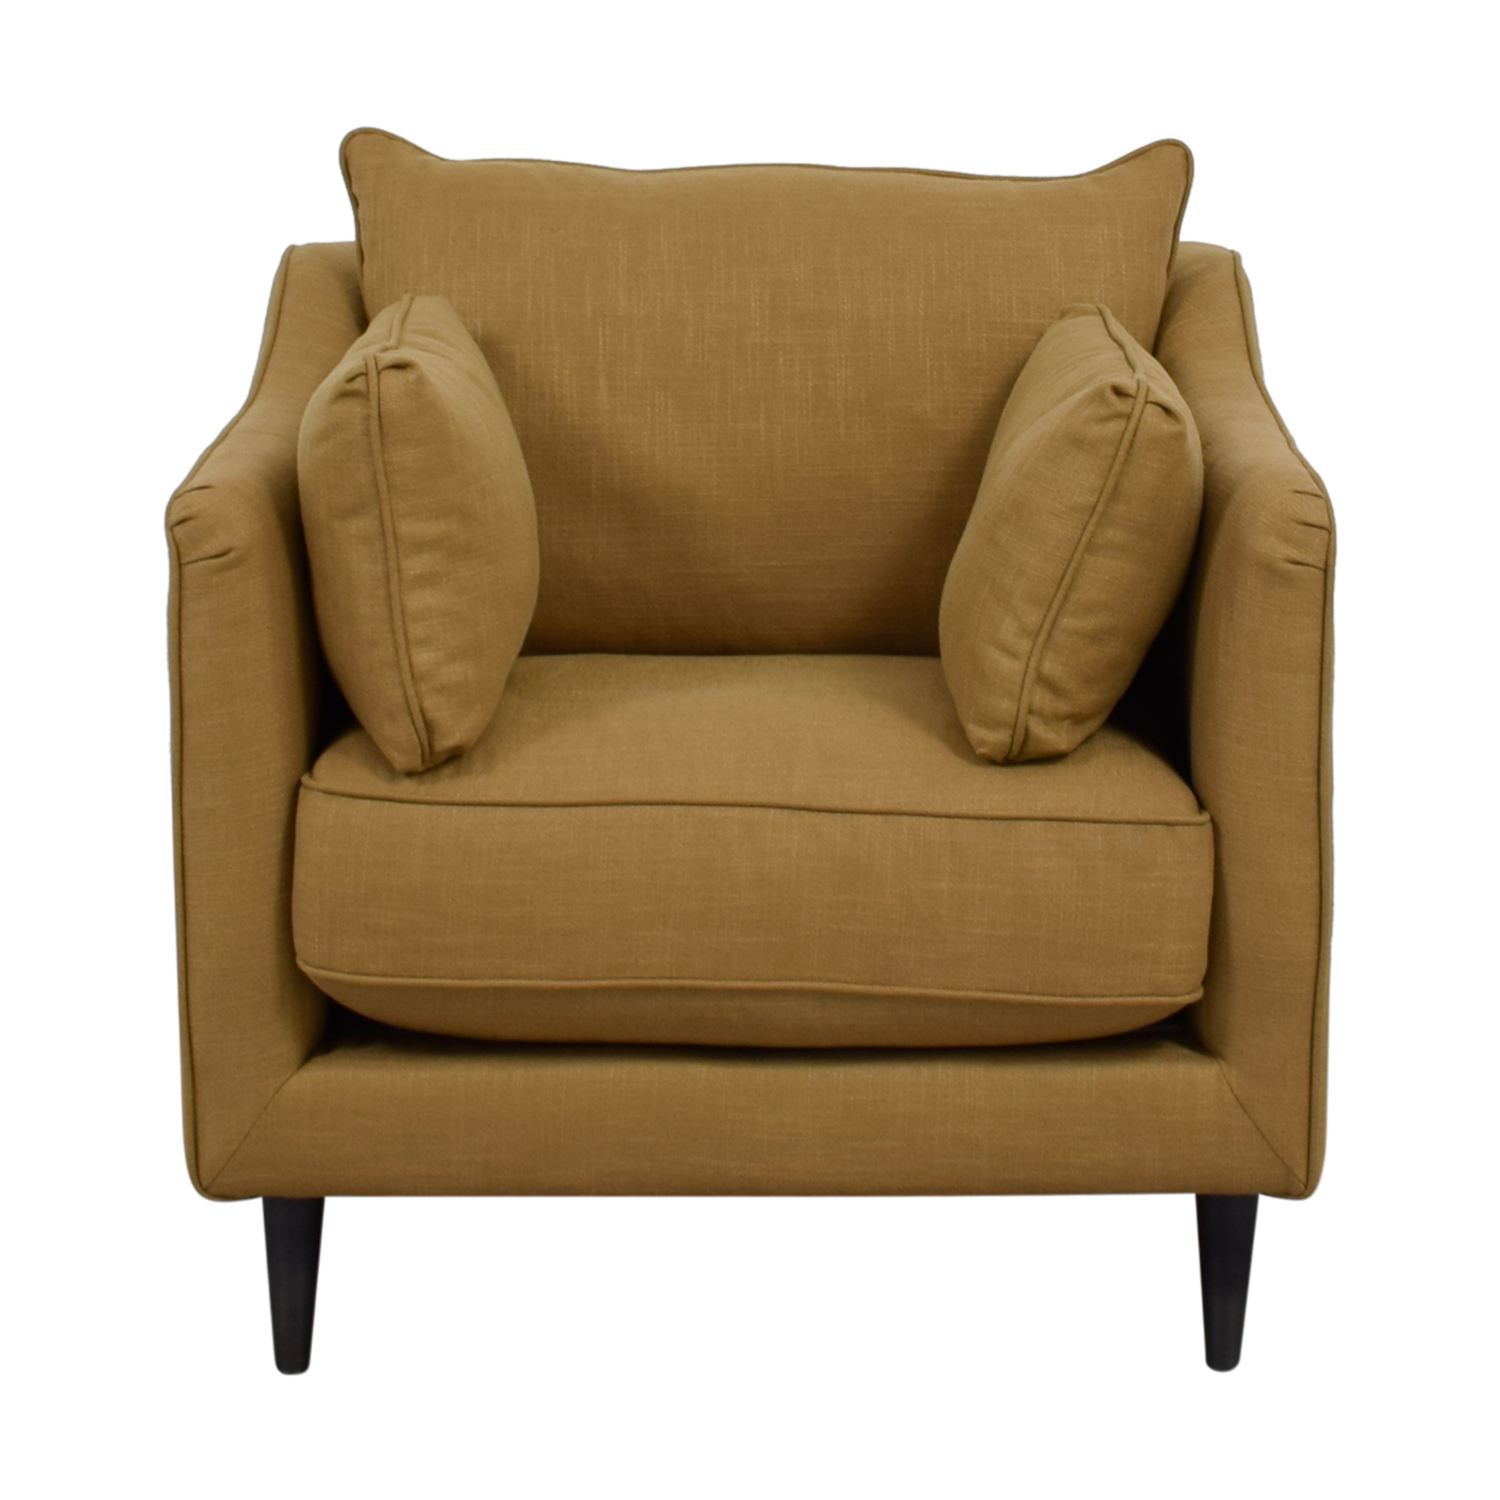 Caitlin Tan Arm Chair discount